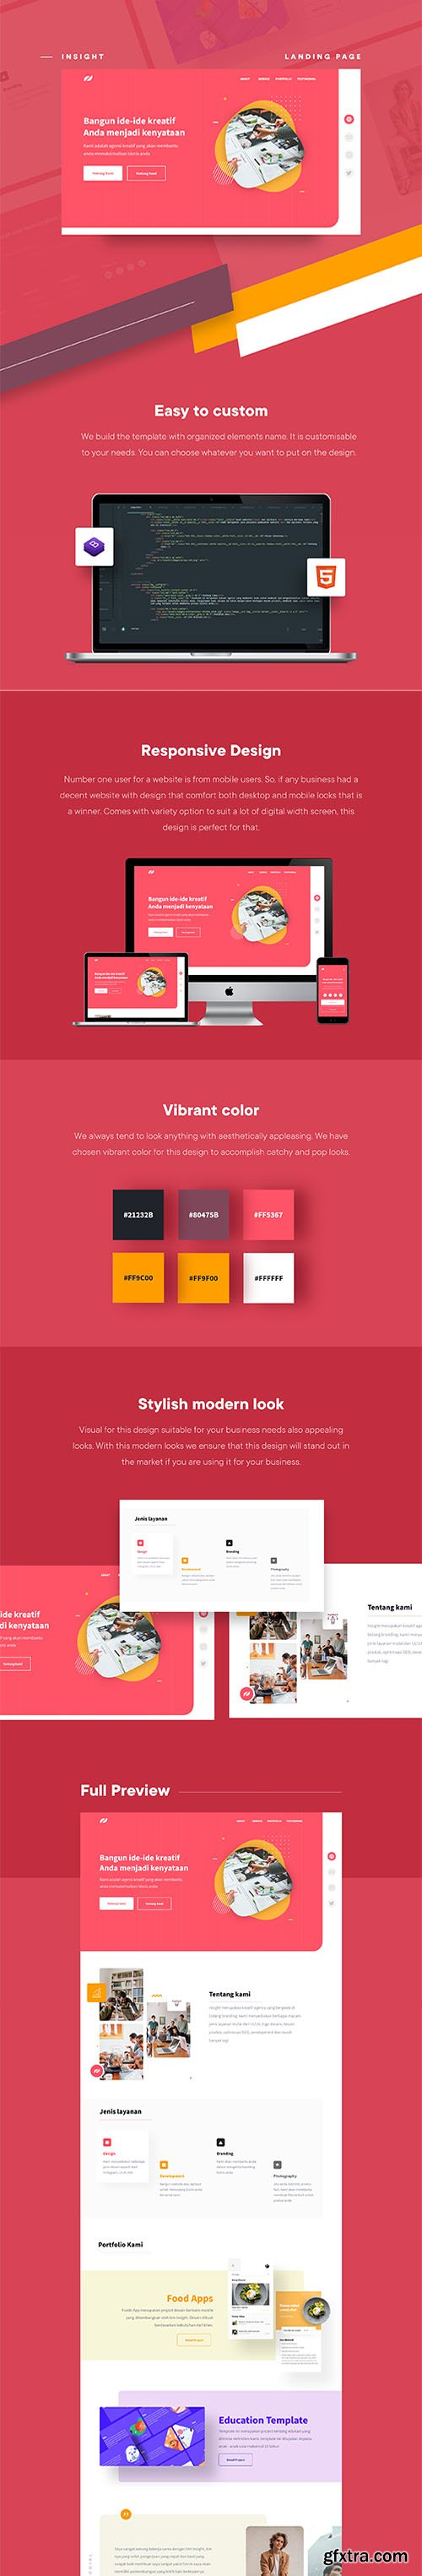 Insight - Awesome Website Template